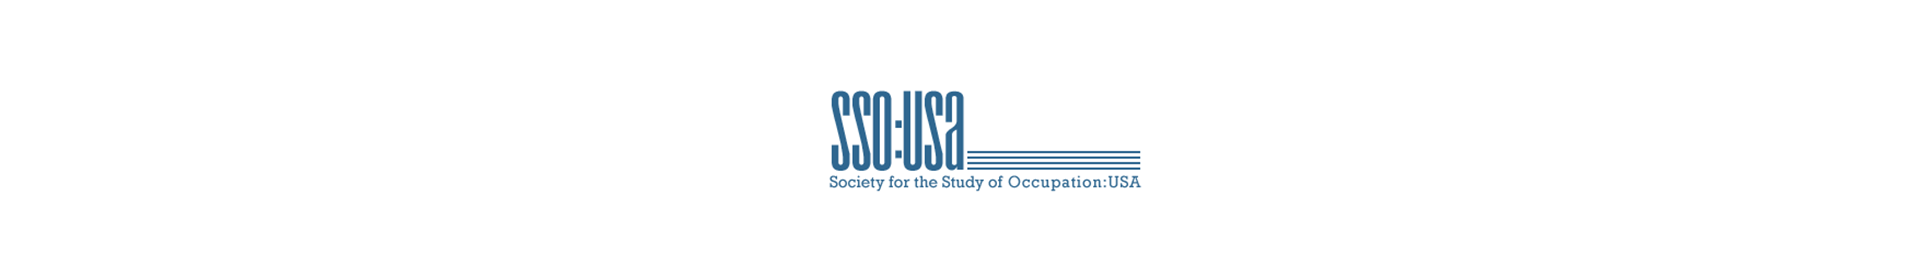 2019 SSO:USA Annual Meeting  Event Banner